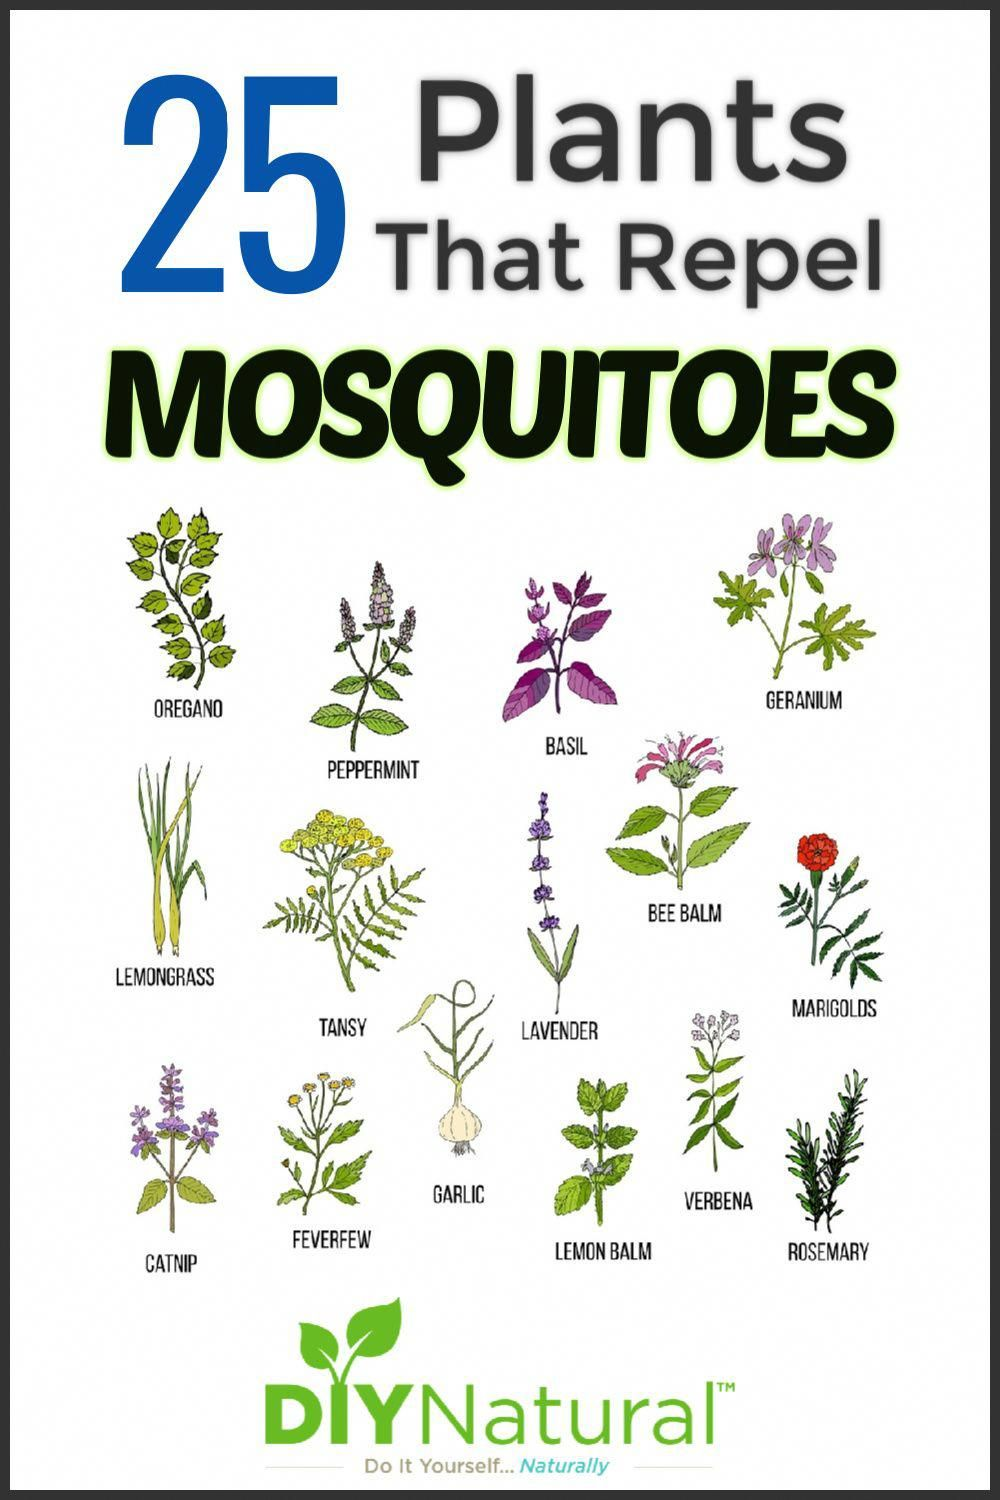 We Have No Screens Around Our Porch So We Use Mosquito Repelling Plants To Keep Those Pesk Mosquito Repelling Plants Natural Mosquito Repellant Mosquito Plants